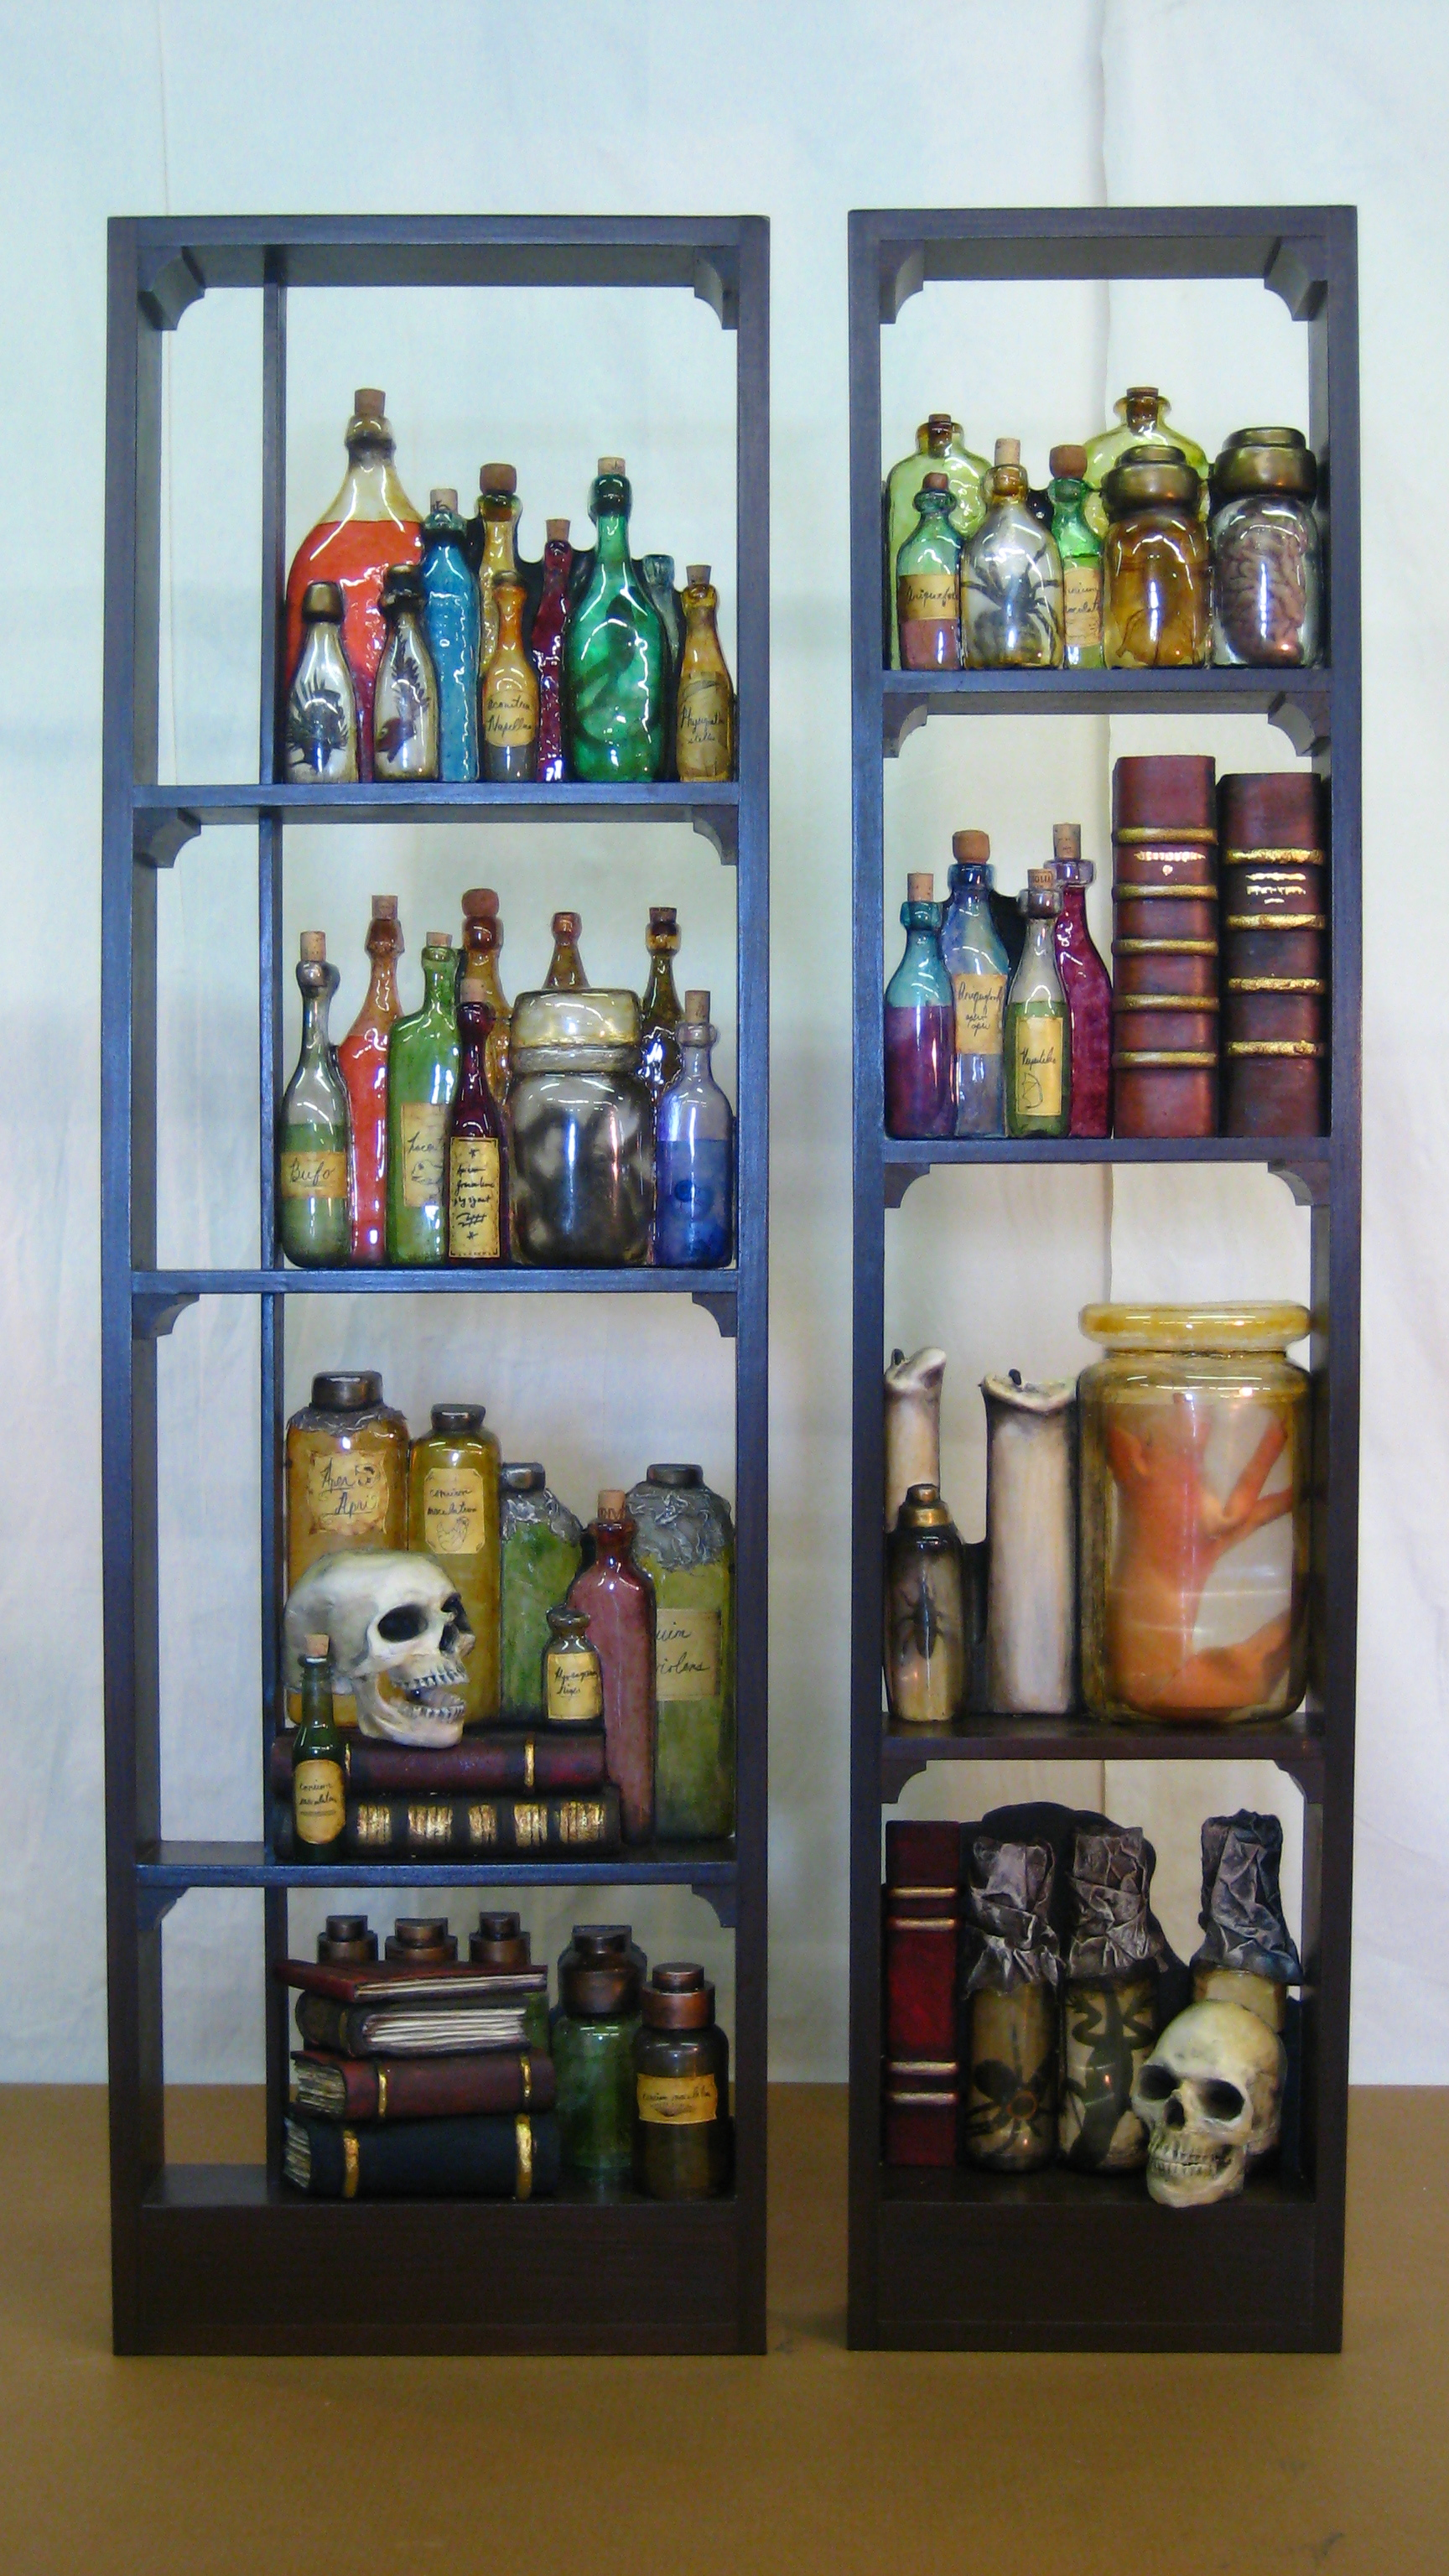 Potion Shelves: The Addams Family